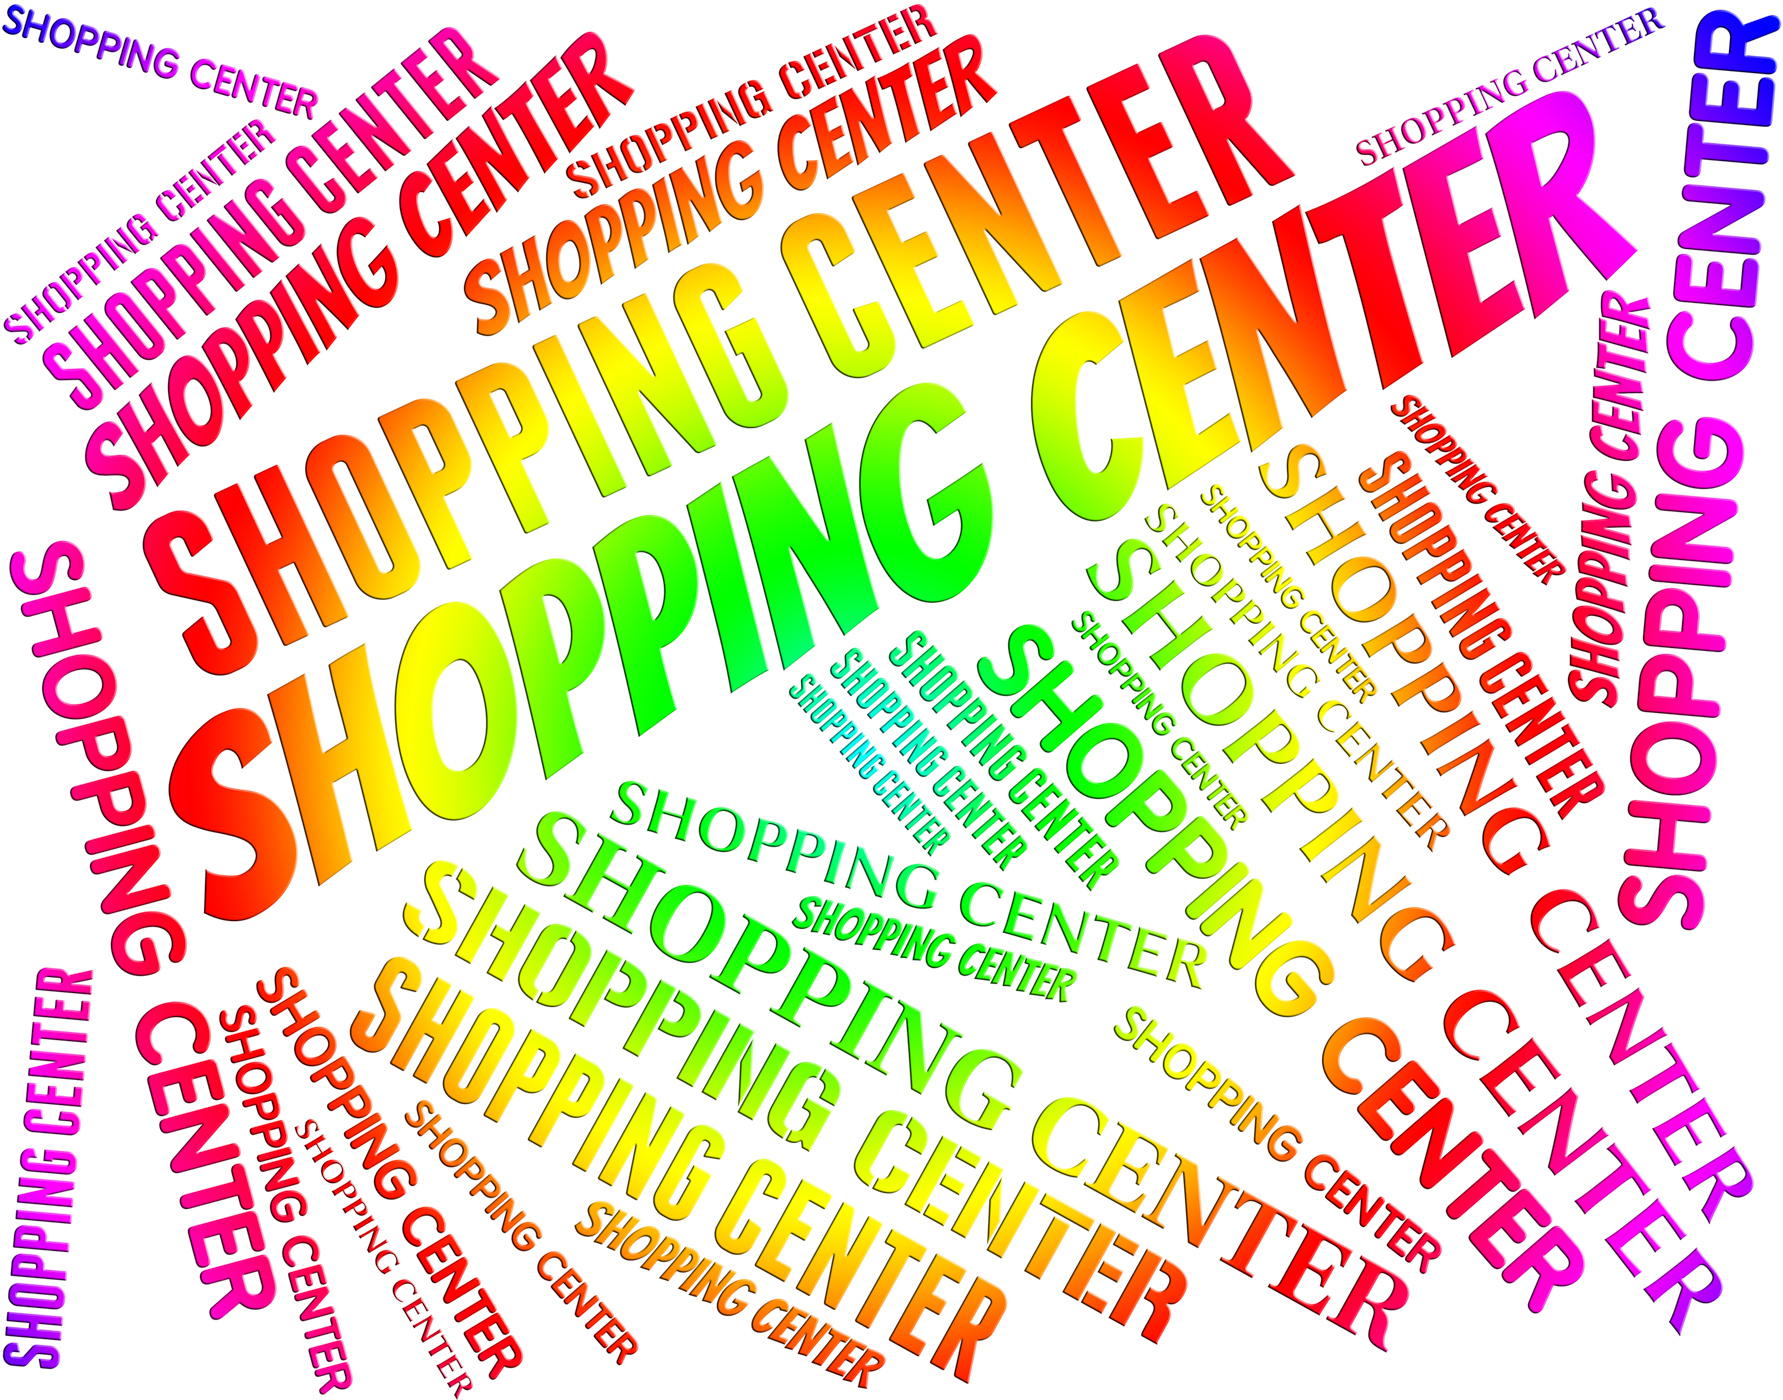 Shopping center shows retail sales and commerce photo